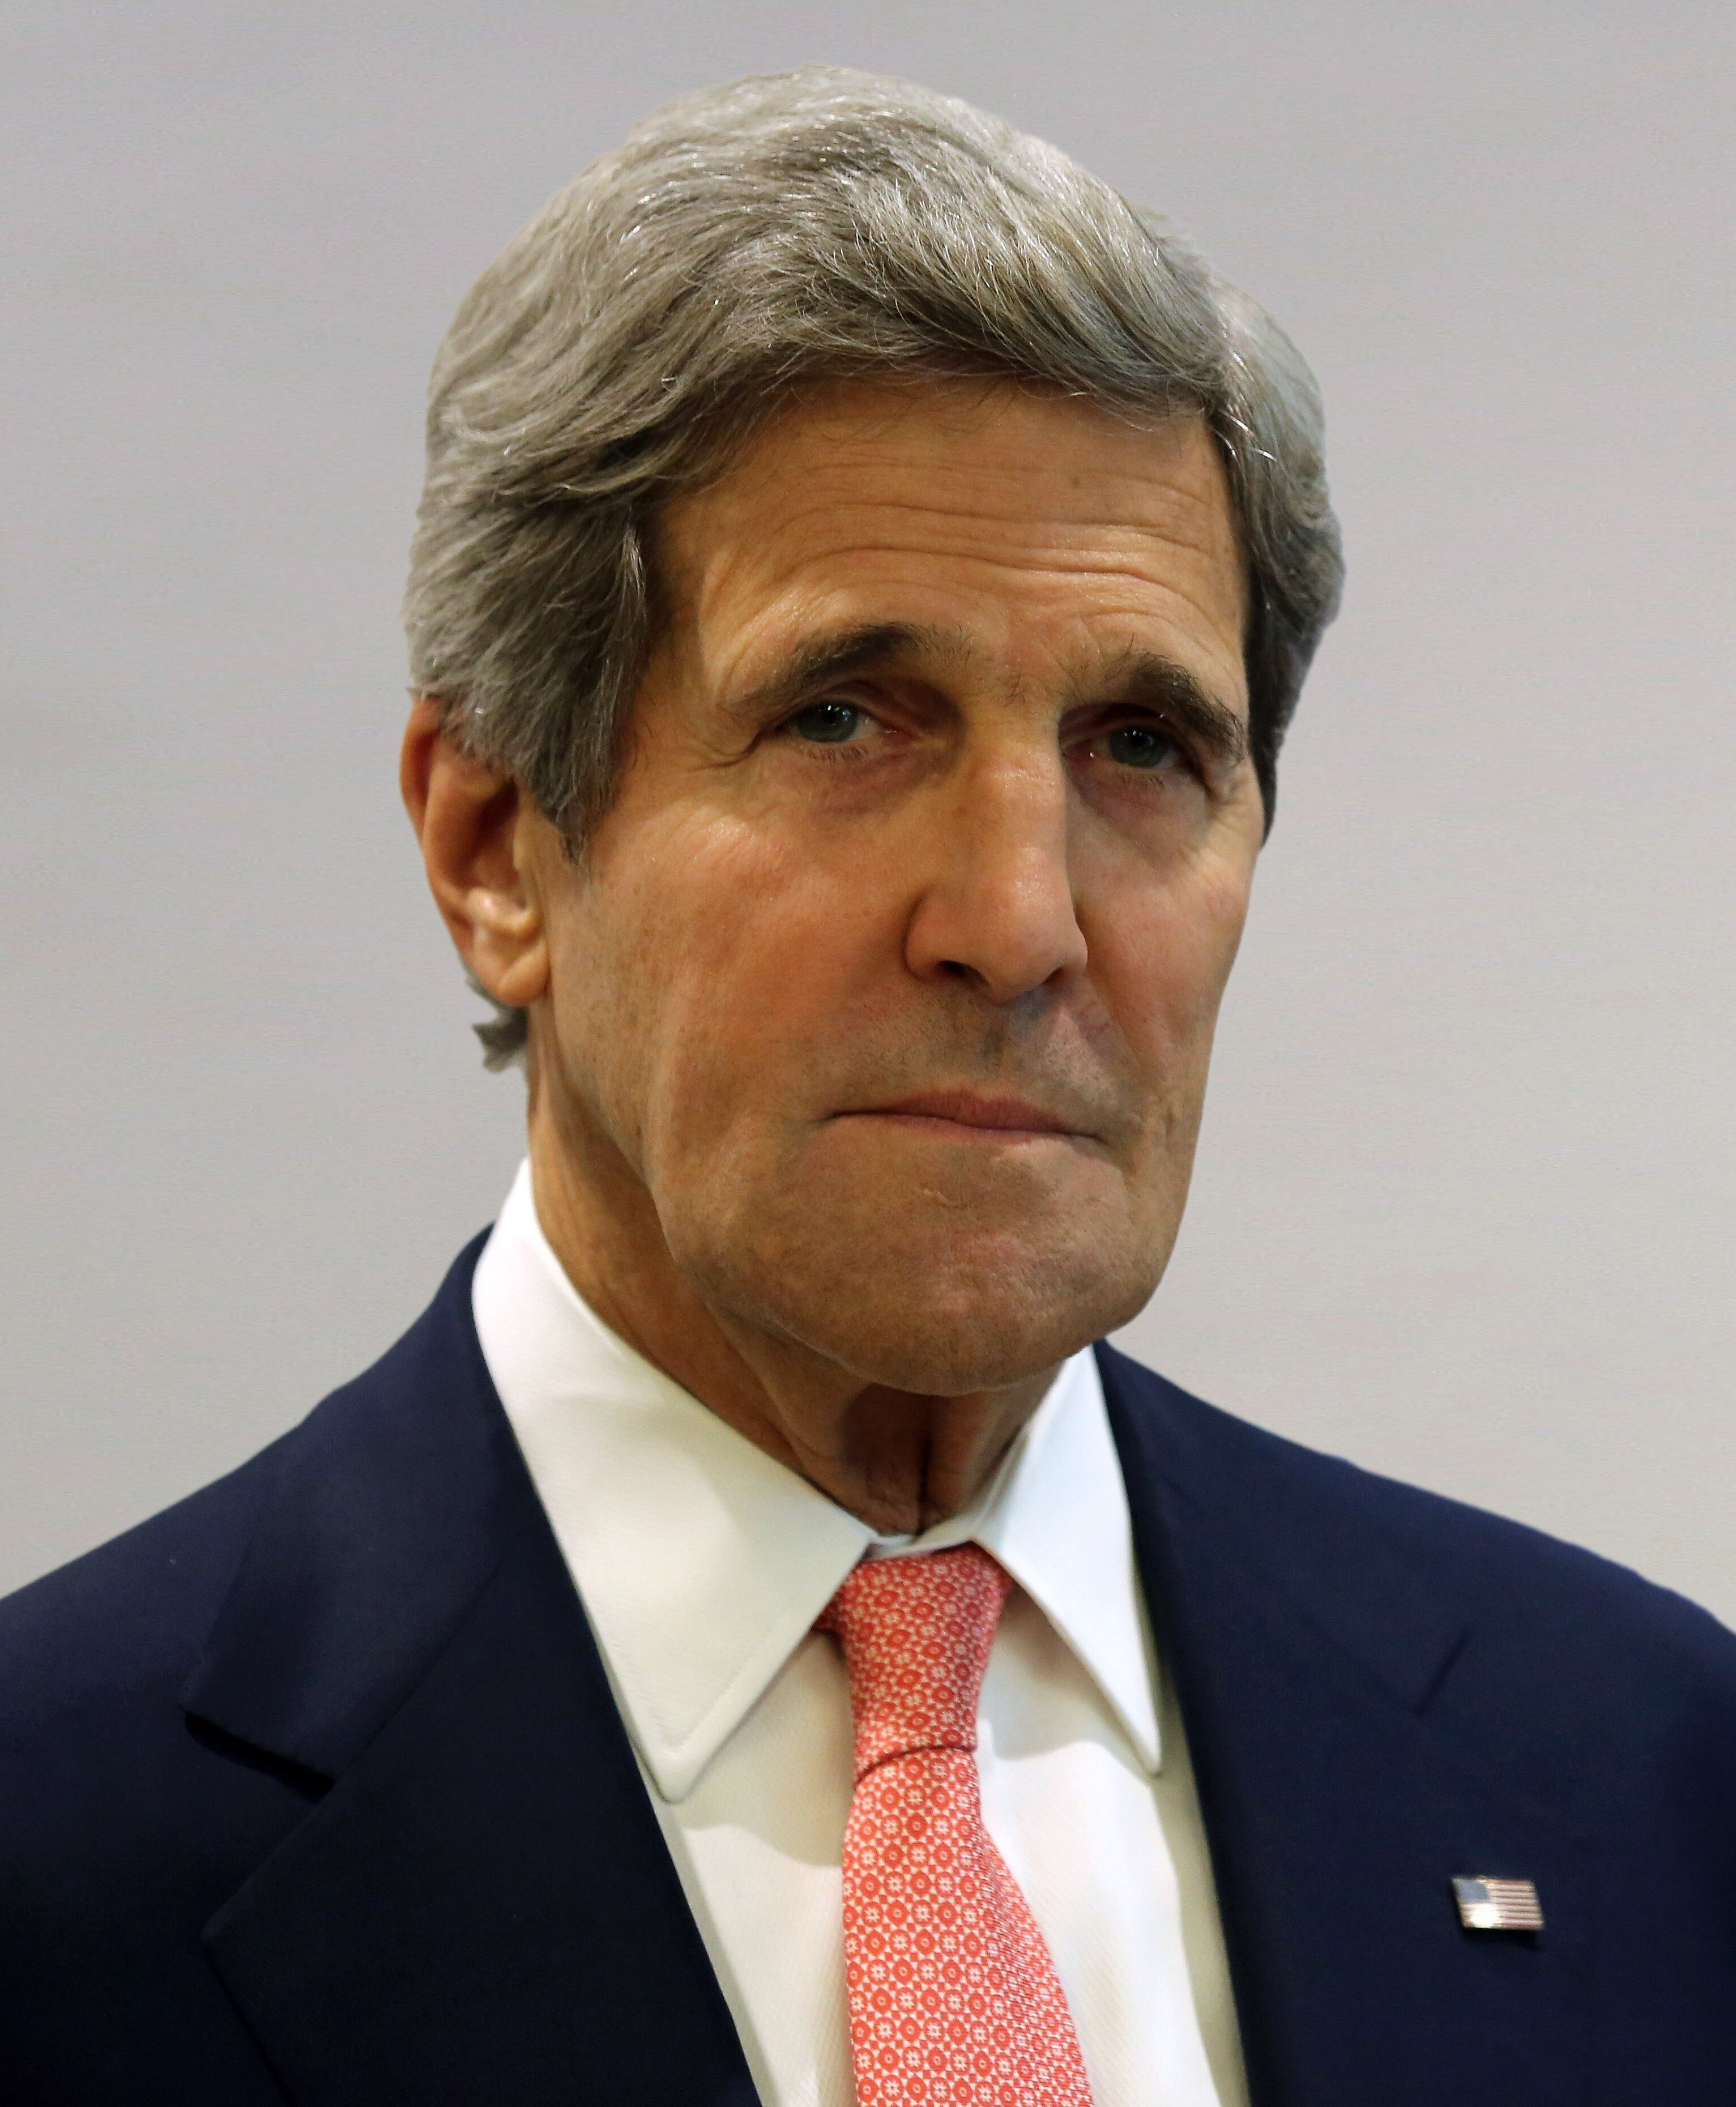 The 77-year old son of father James Grant Forbes II and mother Margaret Tyndal Winthrop John Kerry in 2021 photo. John Kerry earned a  million dollar salary - leaving the net worth at 194 million in 2021